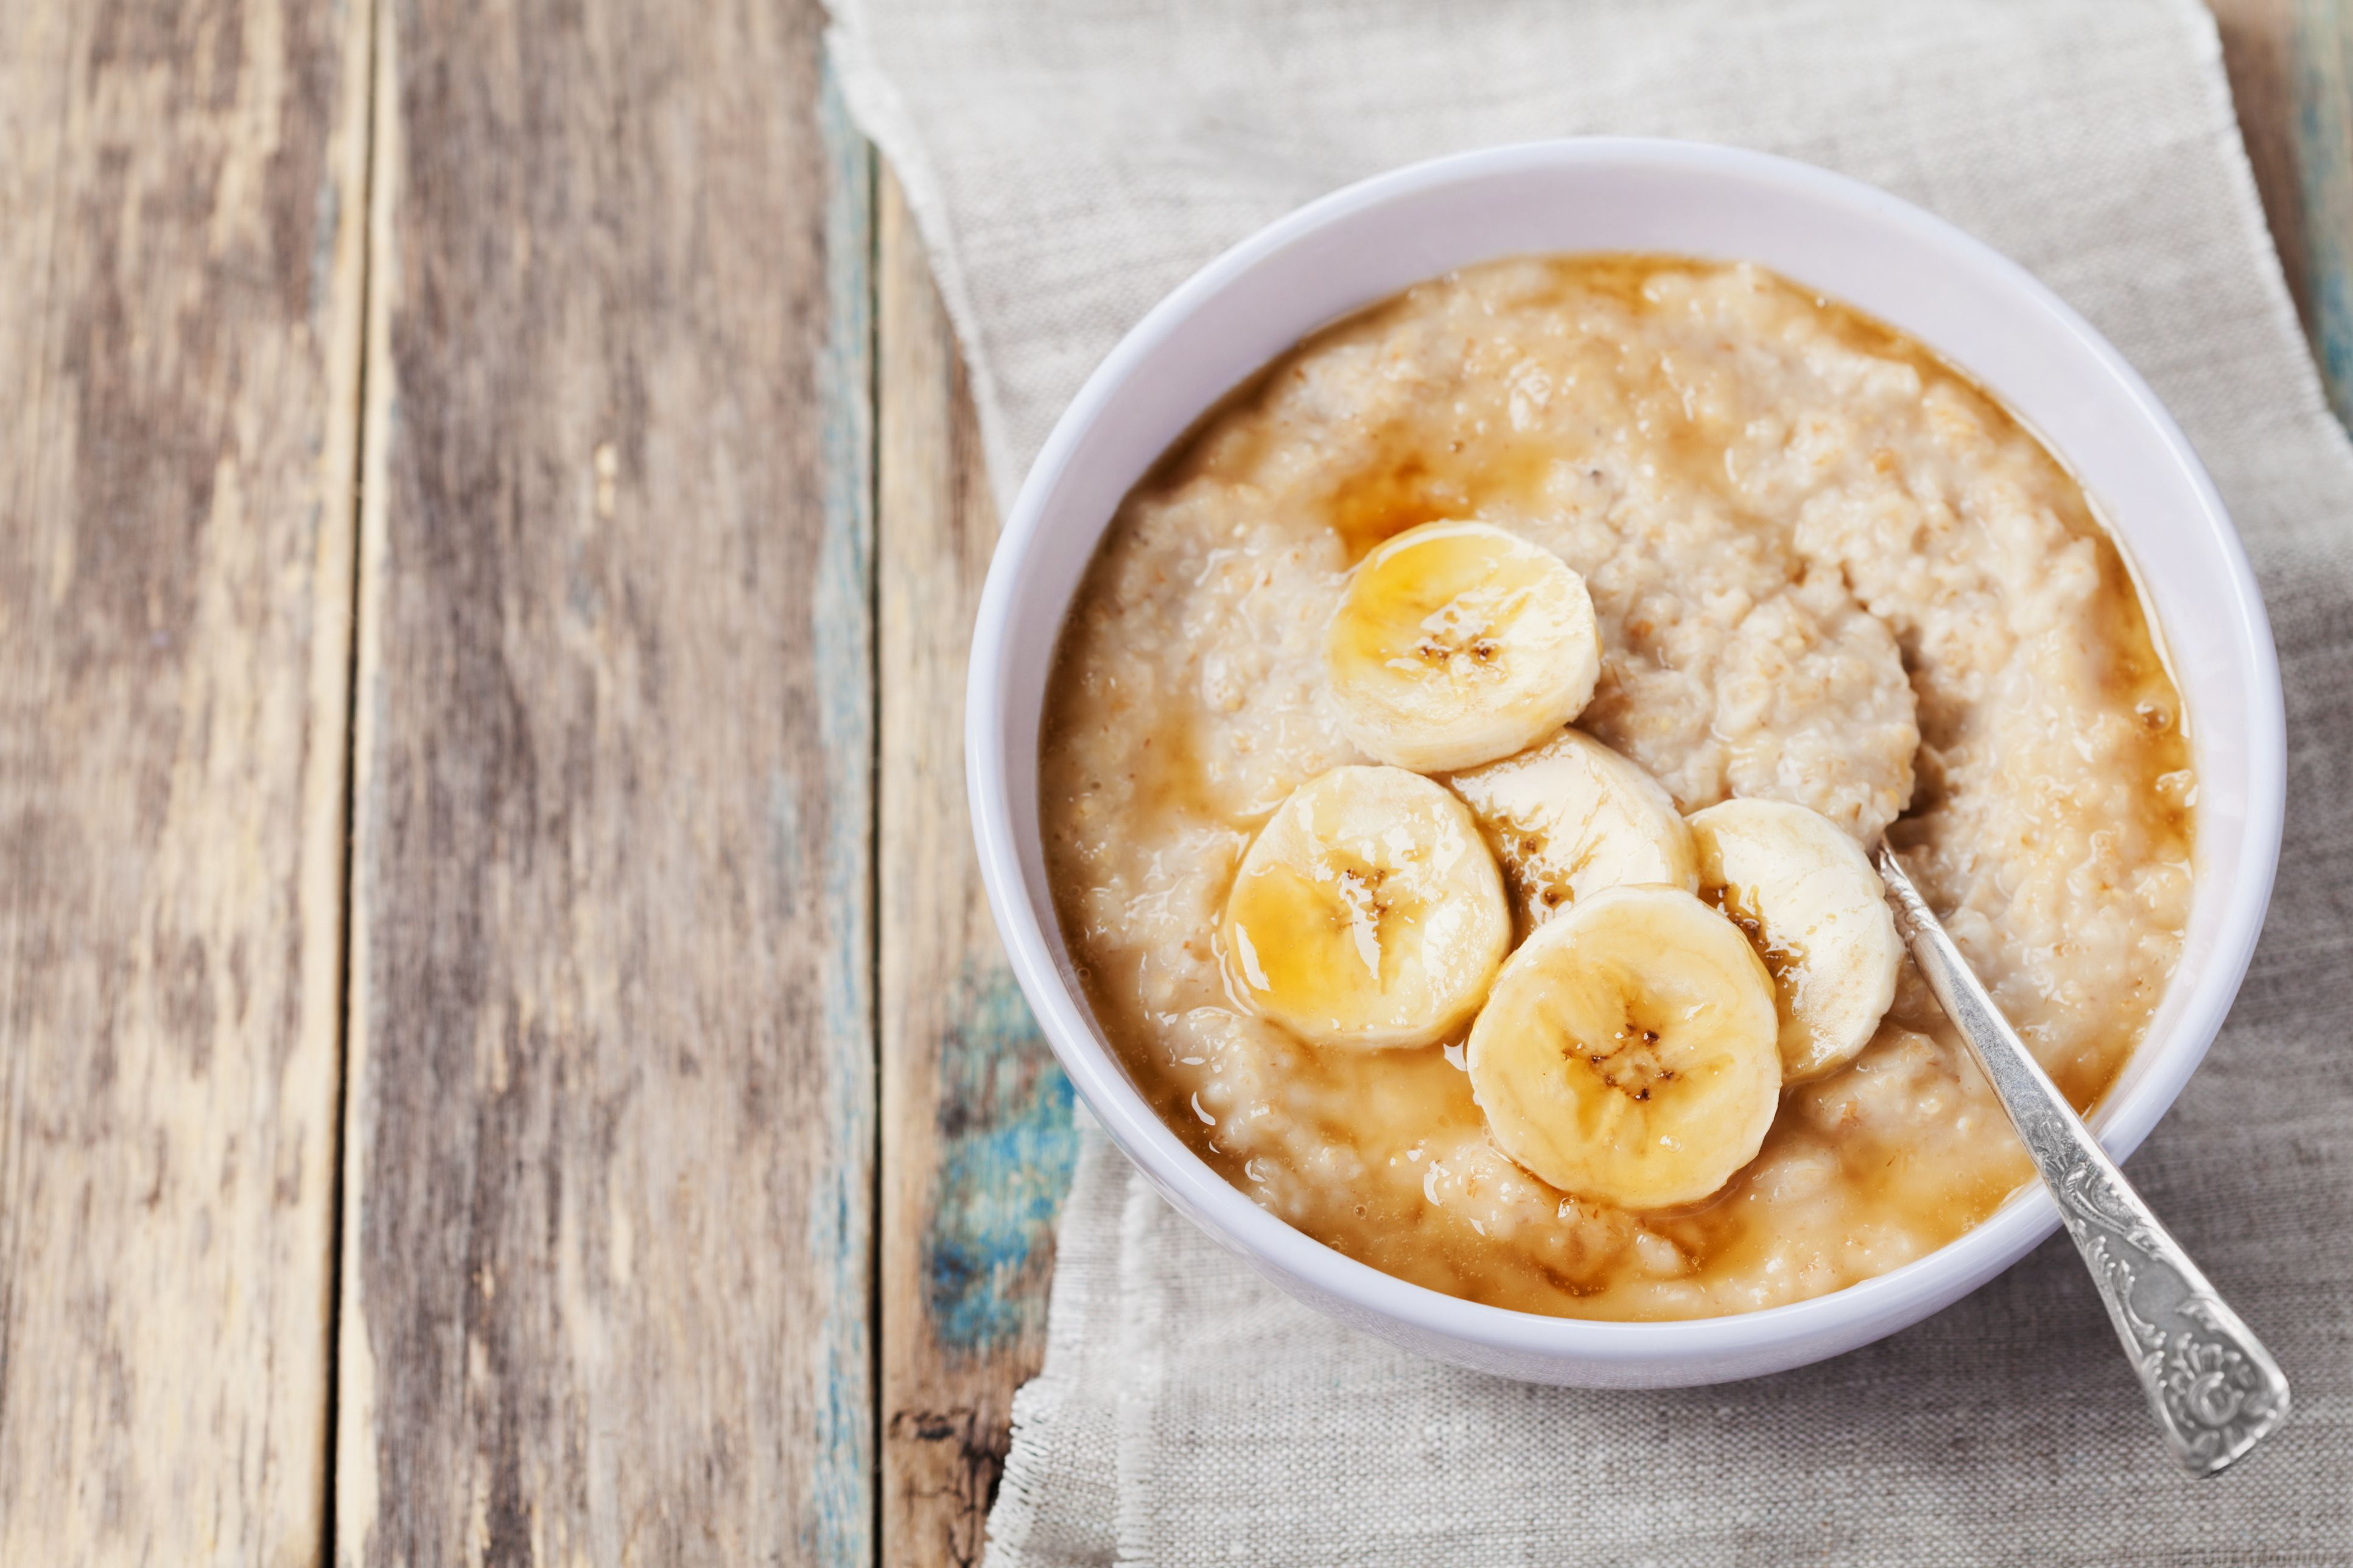 Best foods to eat when you want to lose weight fast